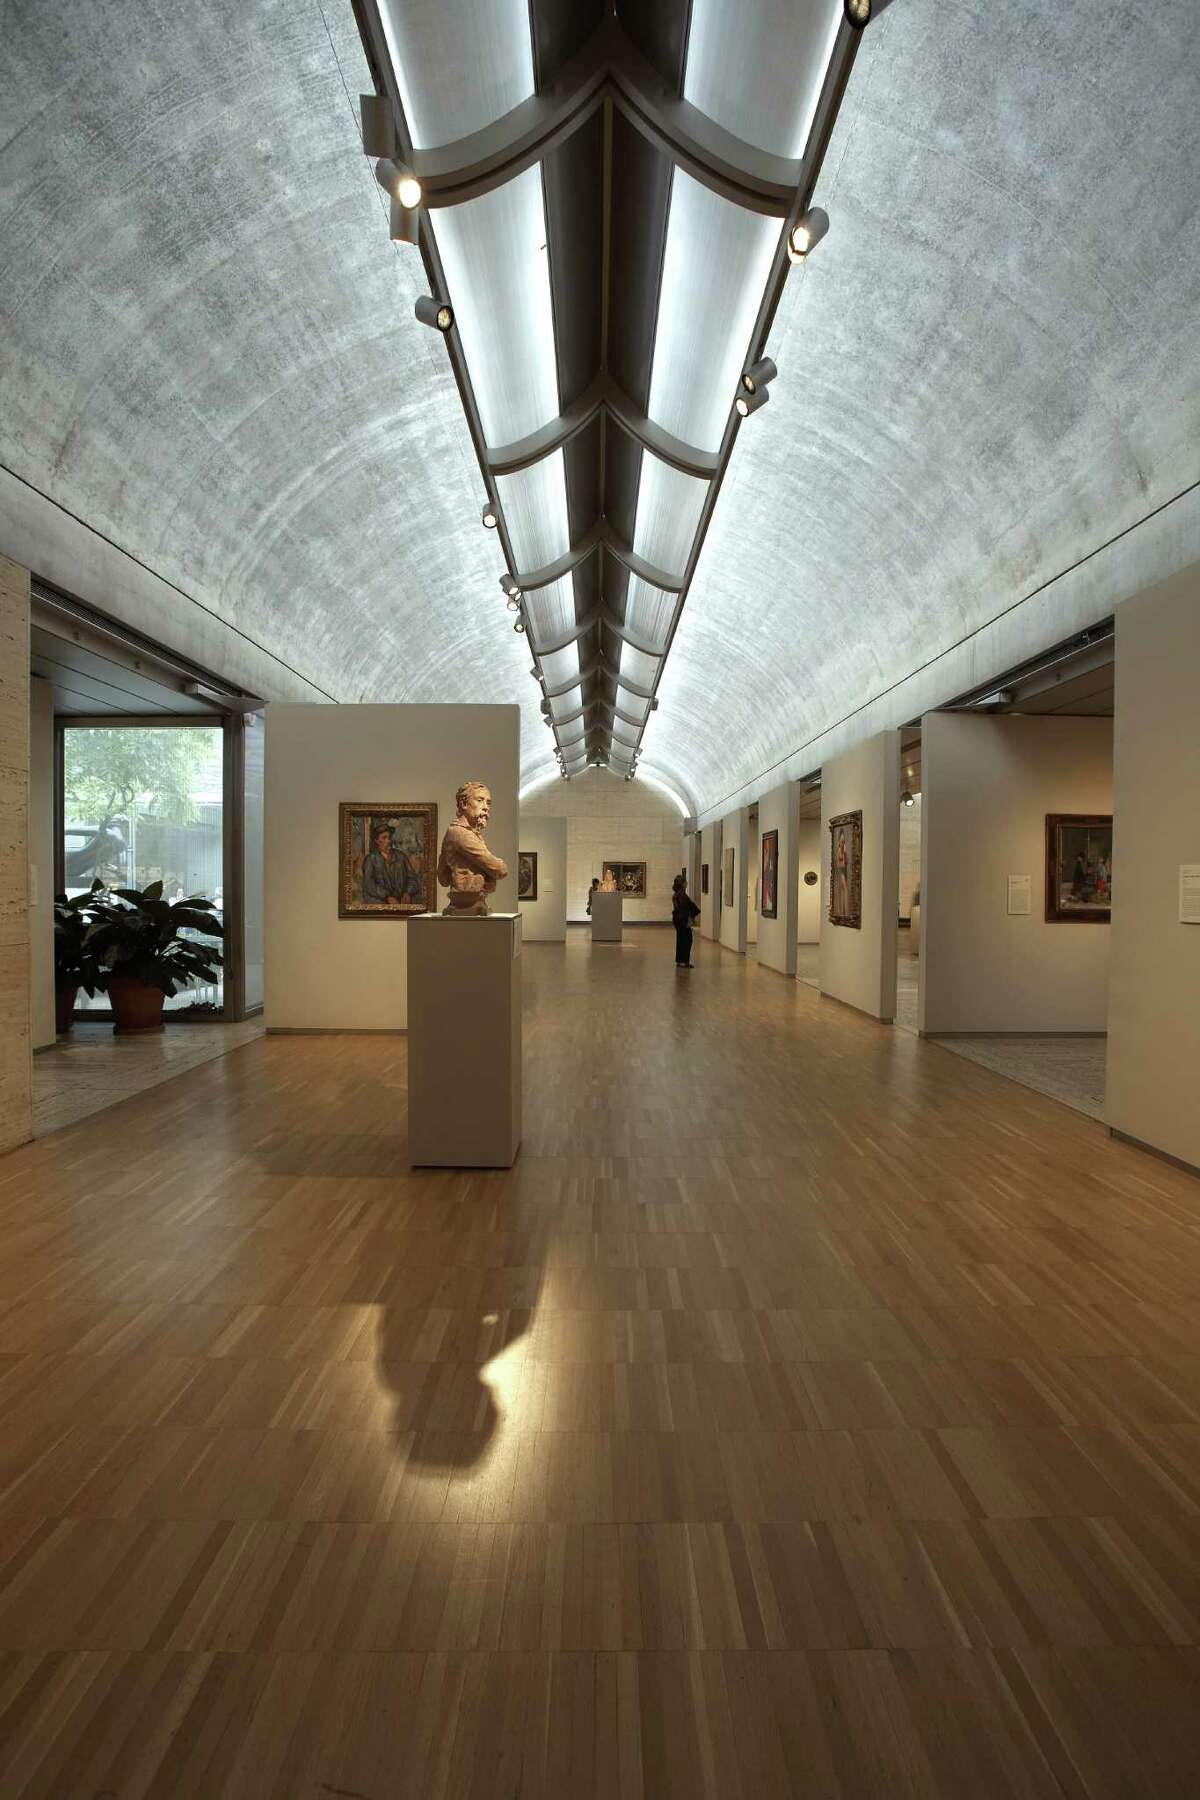 The Kimbell Art Museum in Fort Worth